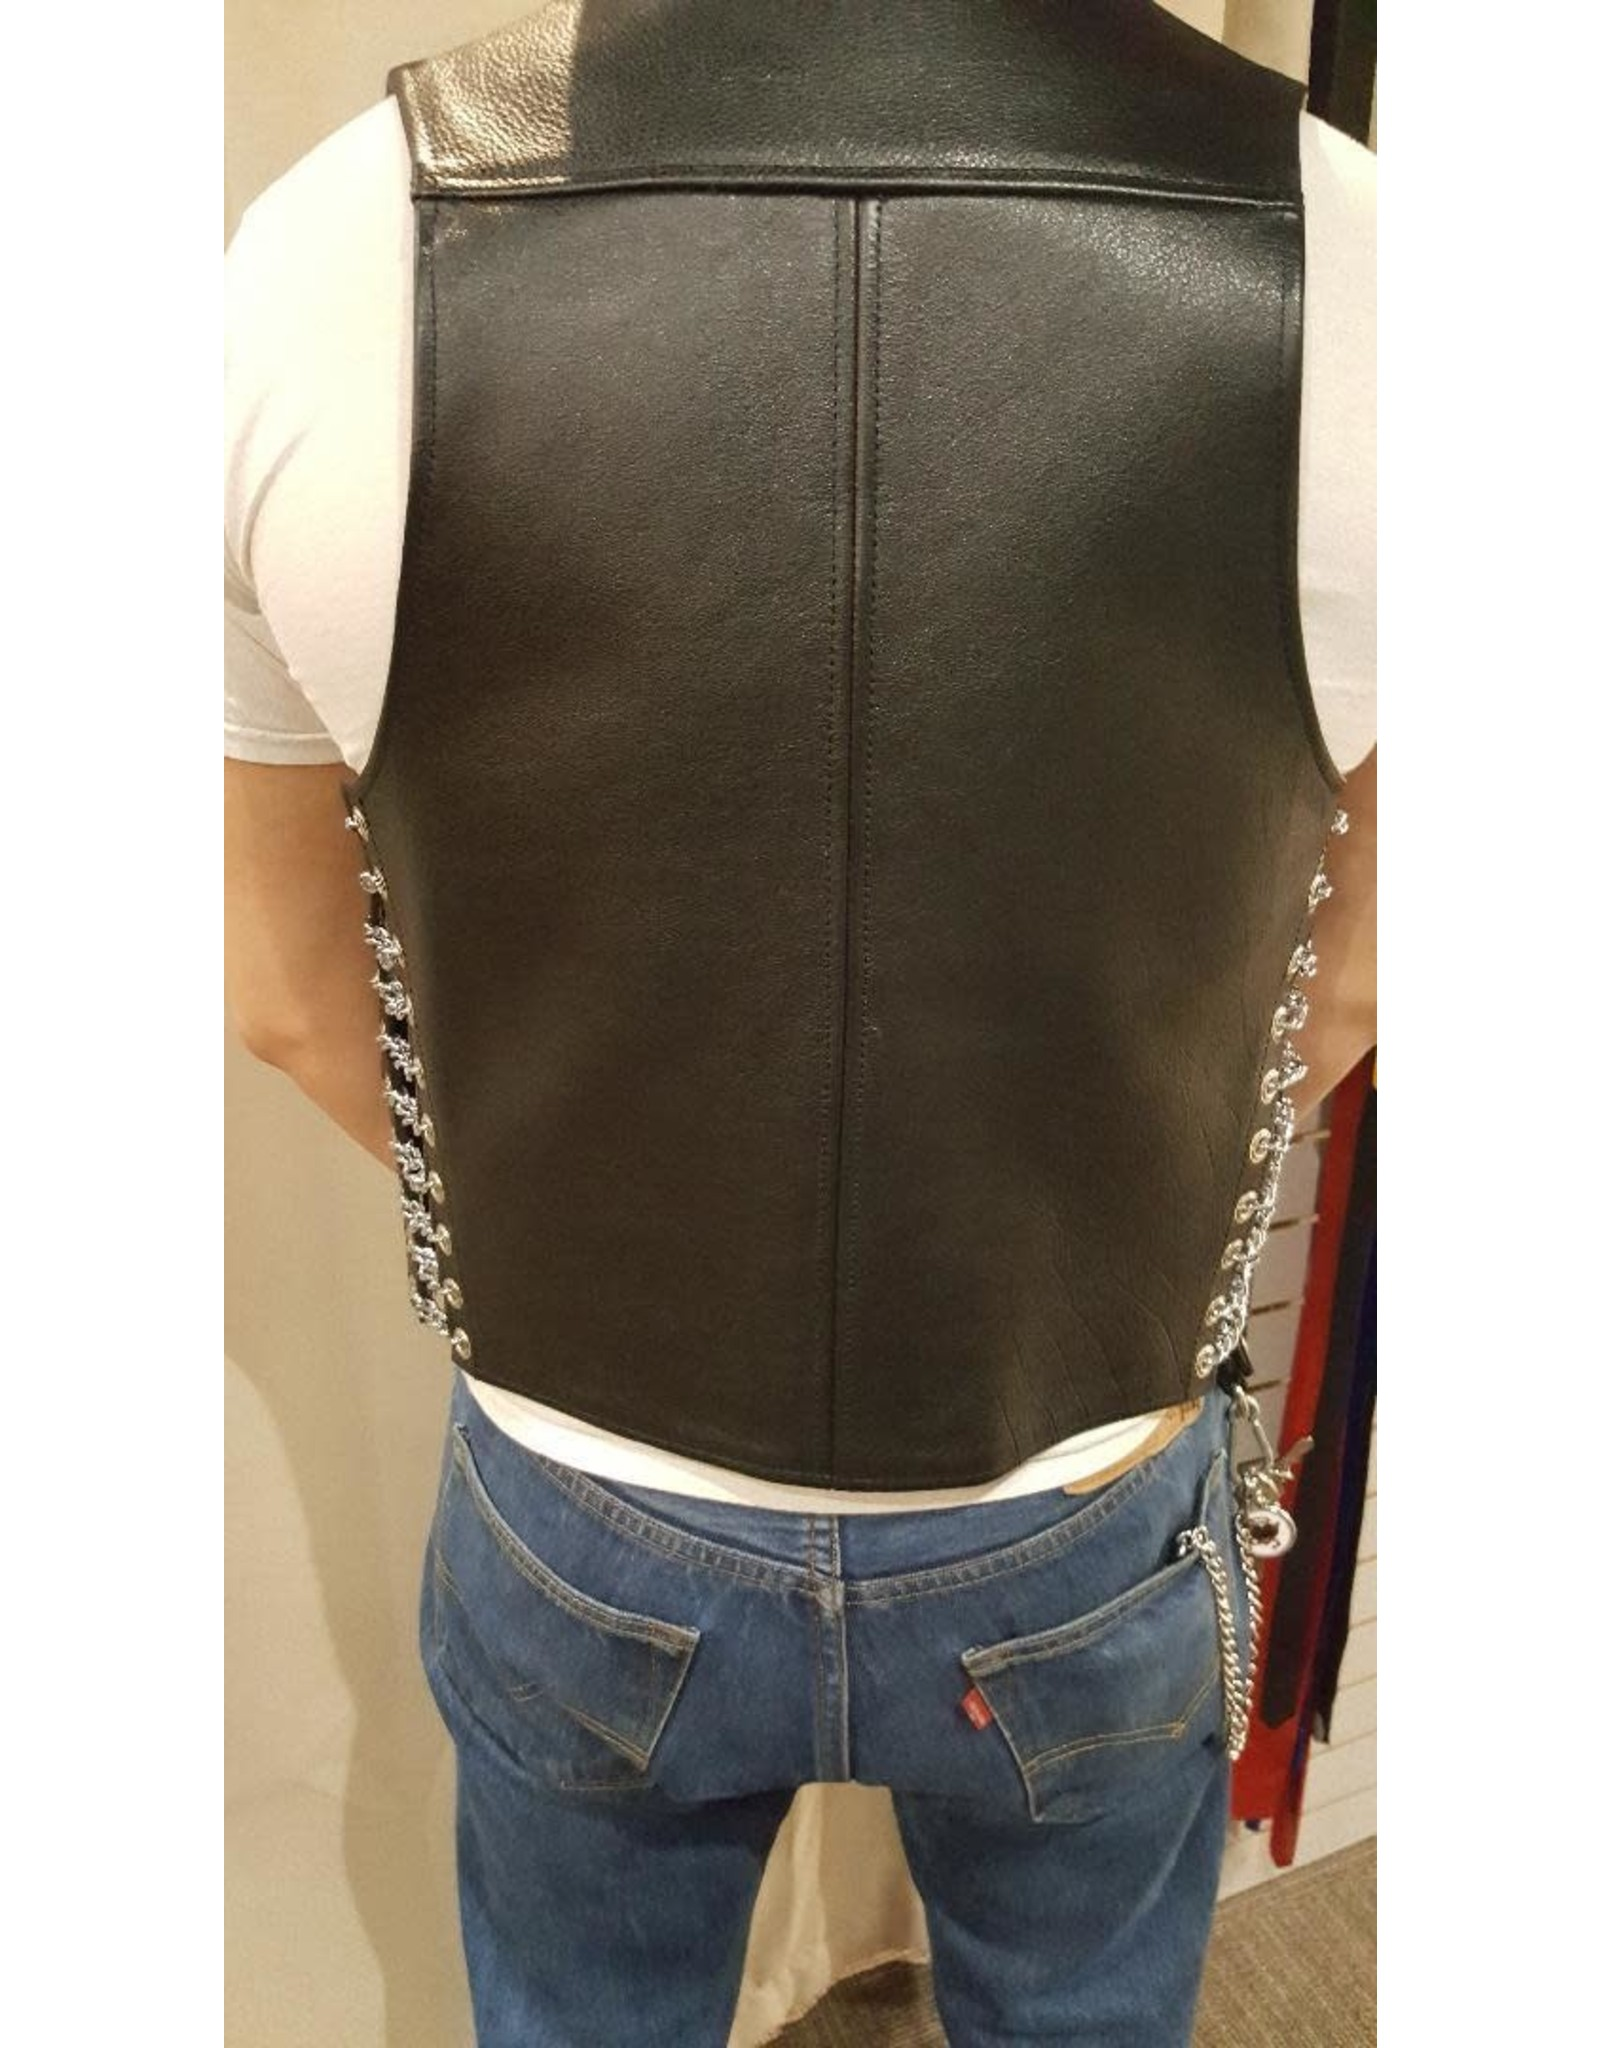 Doghouse Leathers Crafting DH Leathers Bar Vest w/Chain Sides